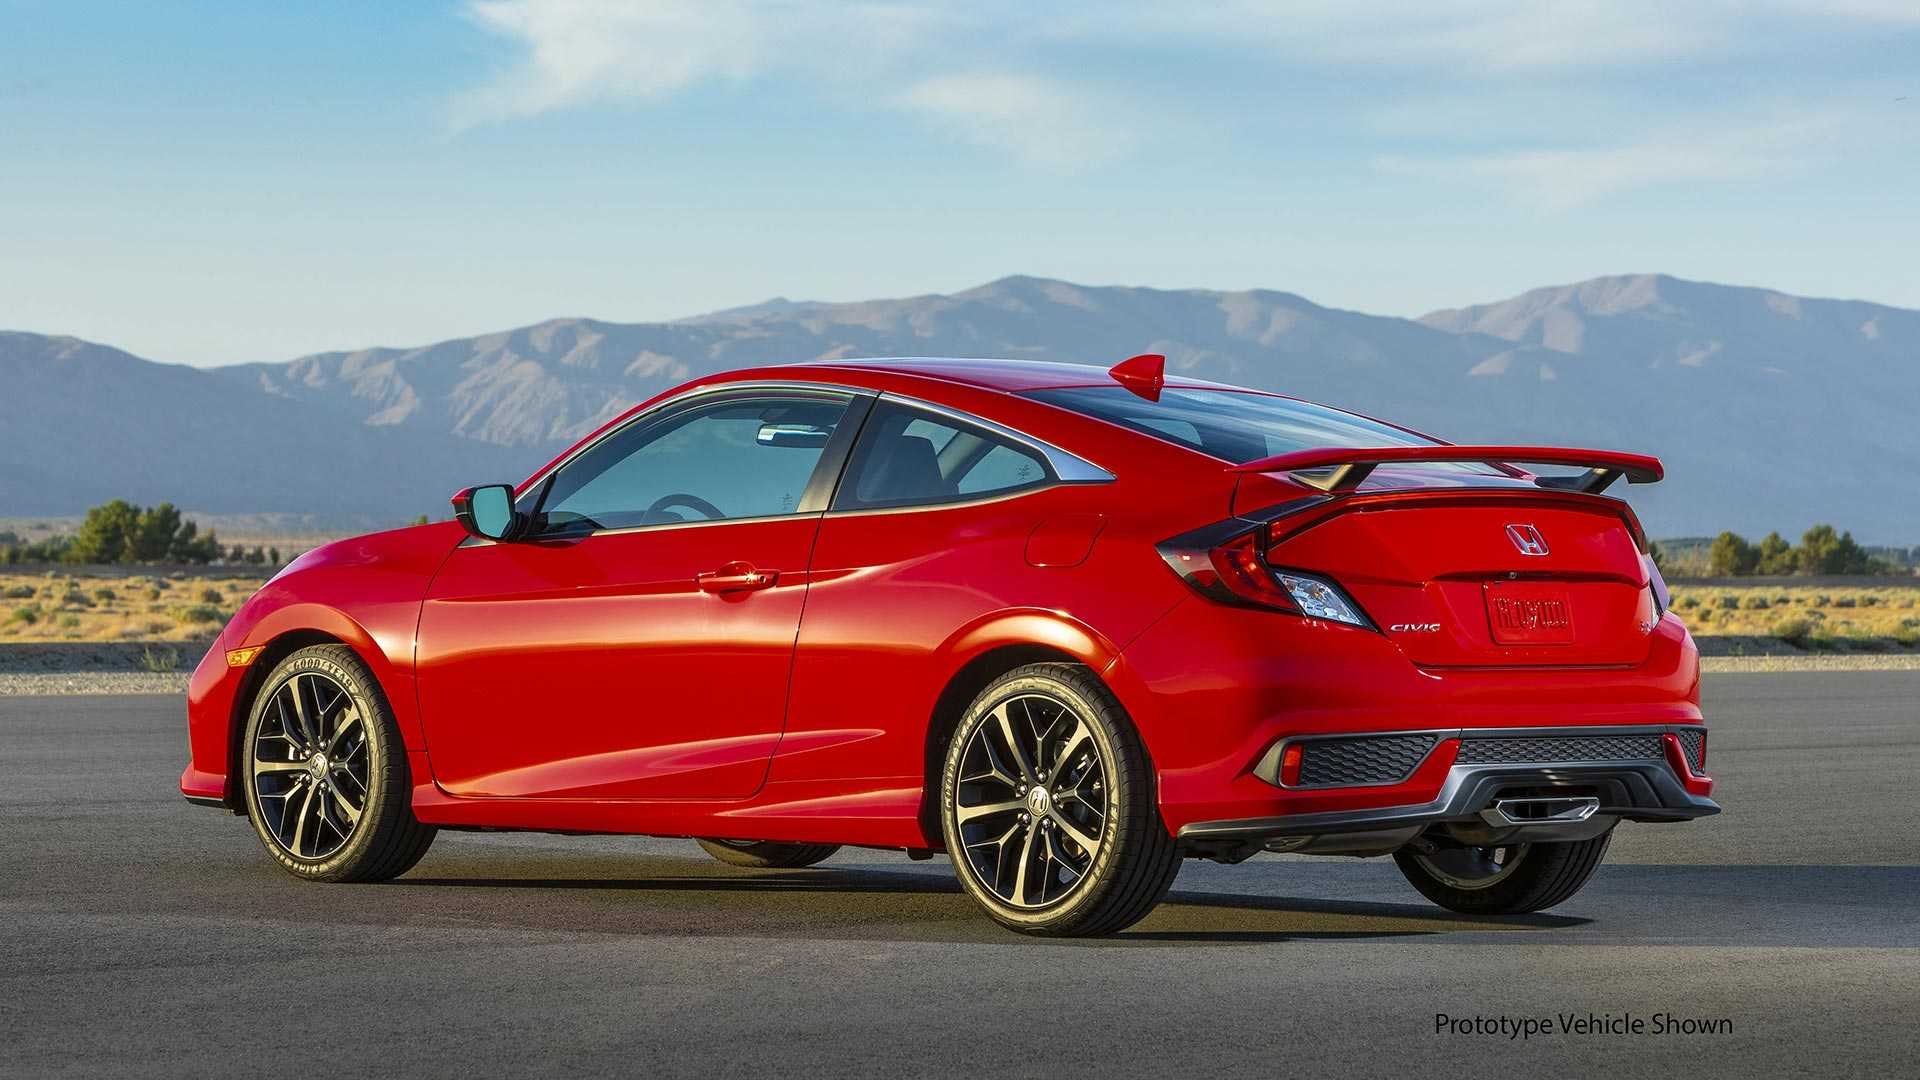 2020 Honda Civic Si Exterior and Interior